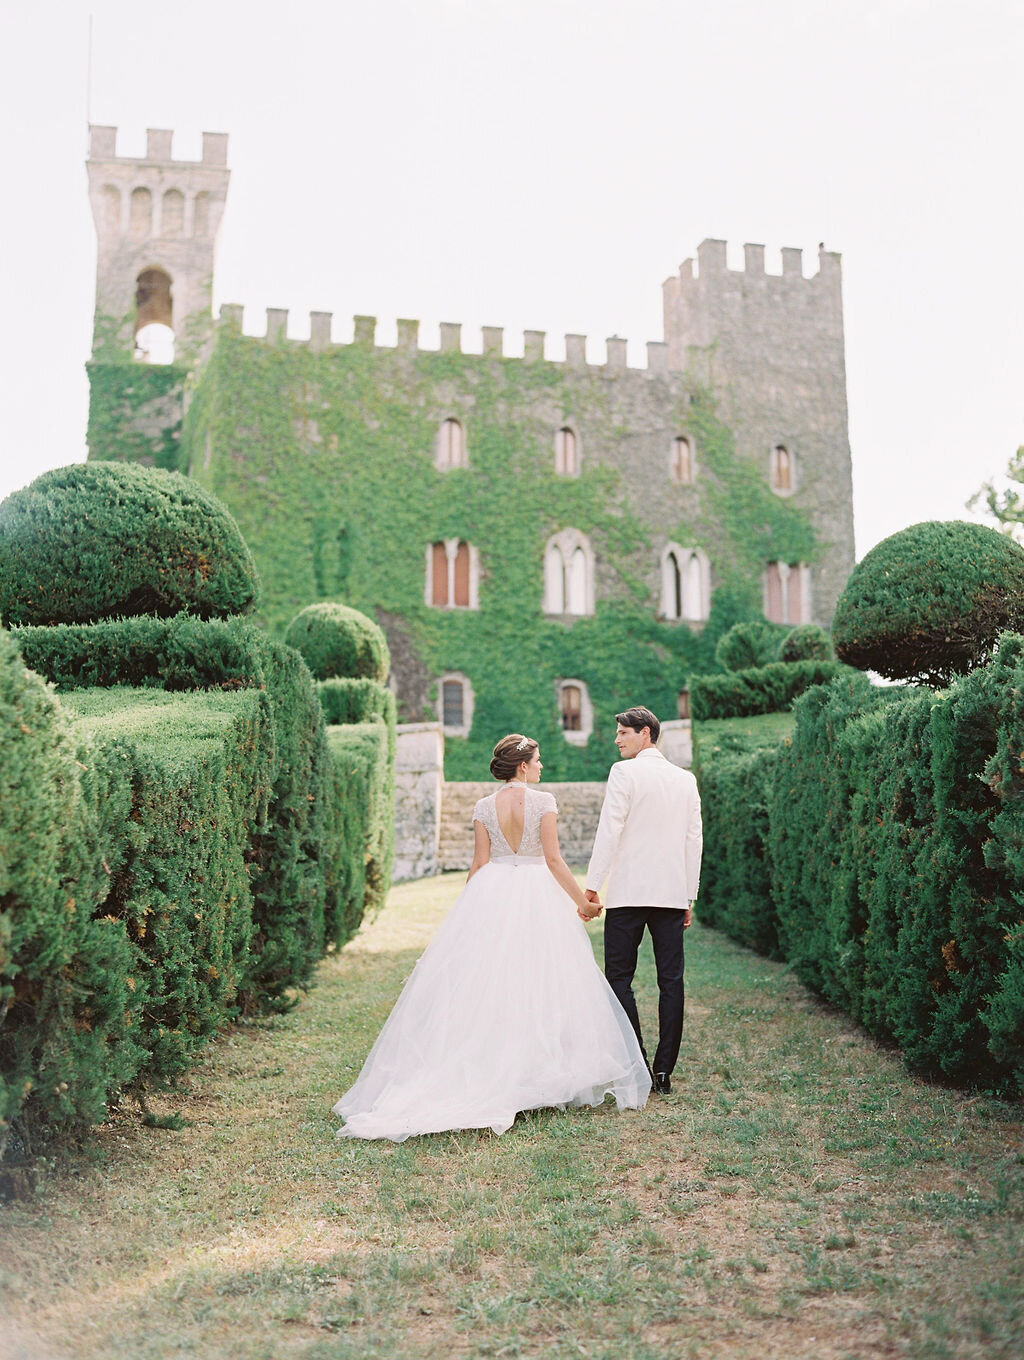 Trine_Juel_hair_and_makeupartist_wedding_Italy_Castello_Di_CelsaQuicksallPhotography_CastelloDiCelsa0373